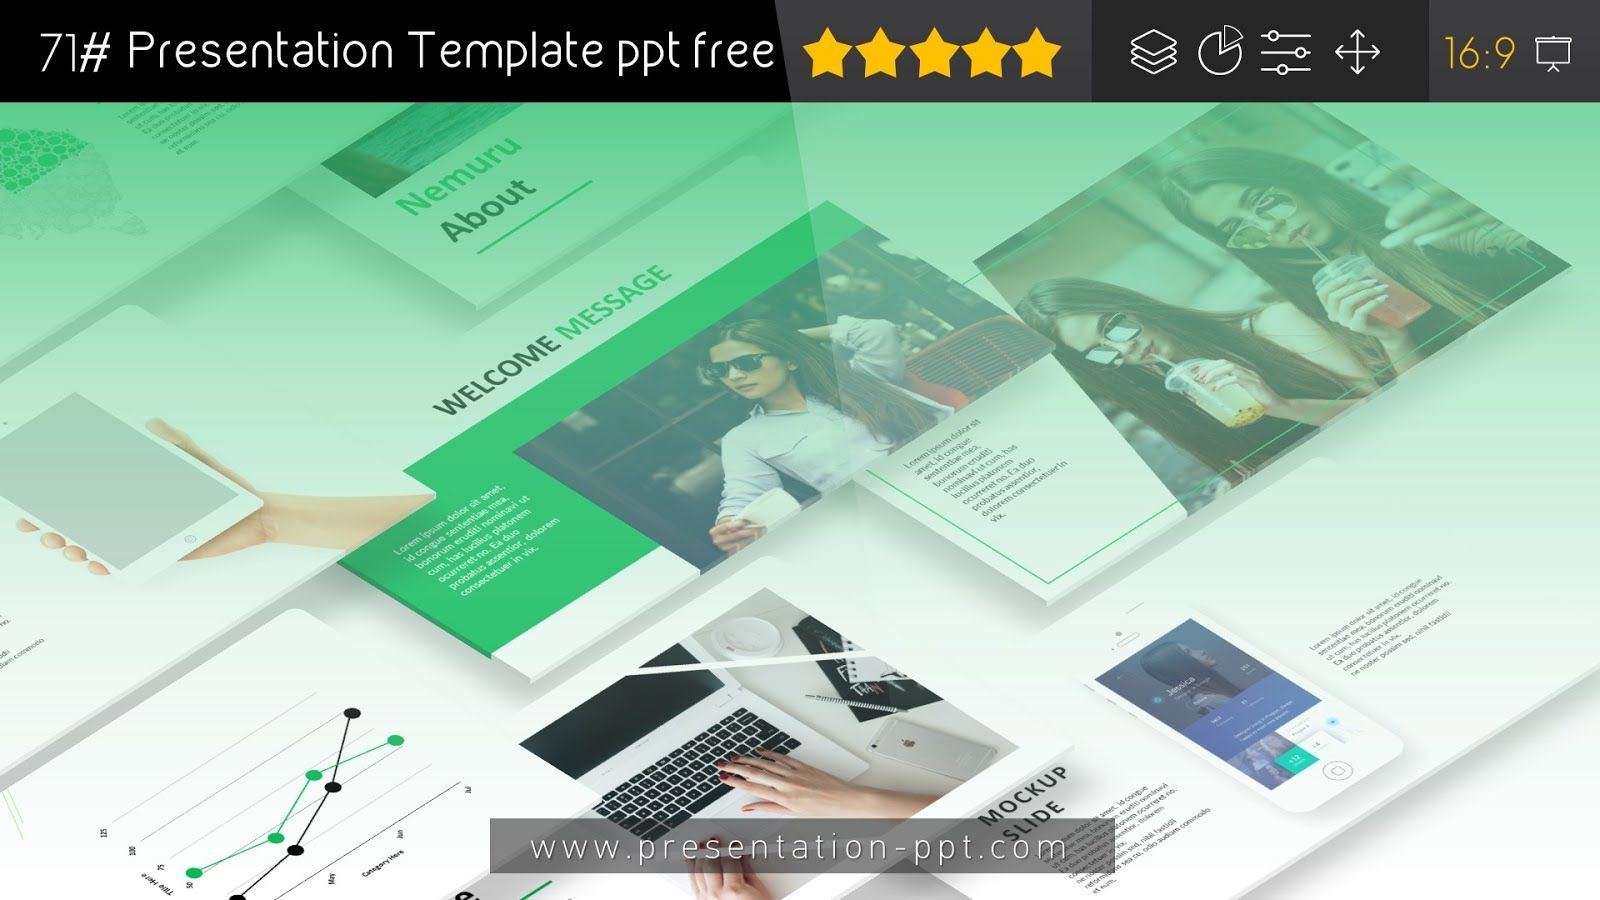 Presentation Template Powerpoint Free Download Powerpoint Free Presentation Templates Powerpoint Template Free